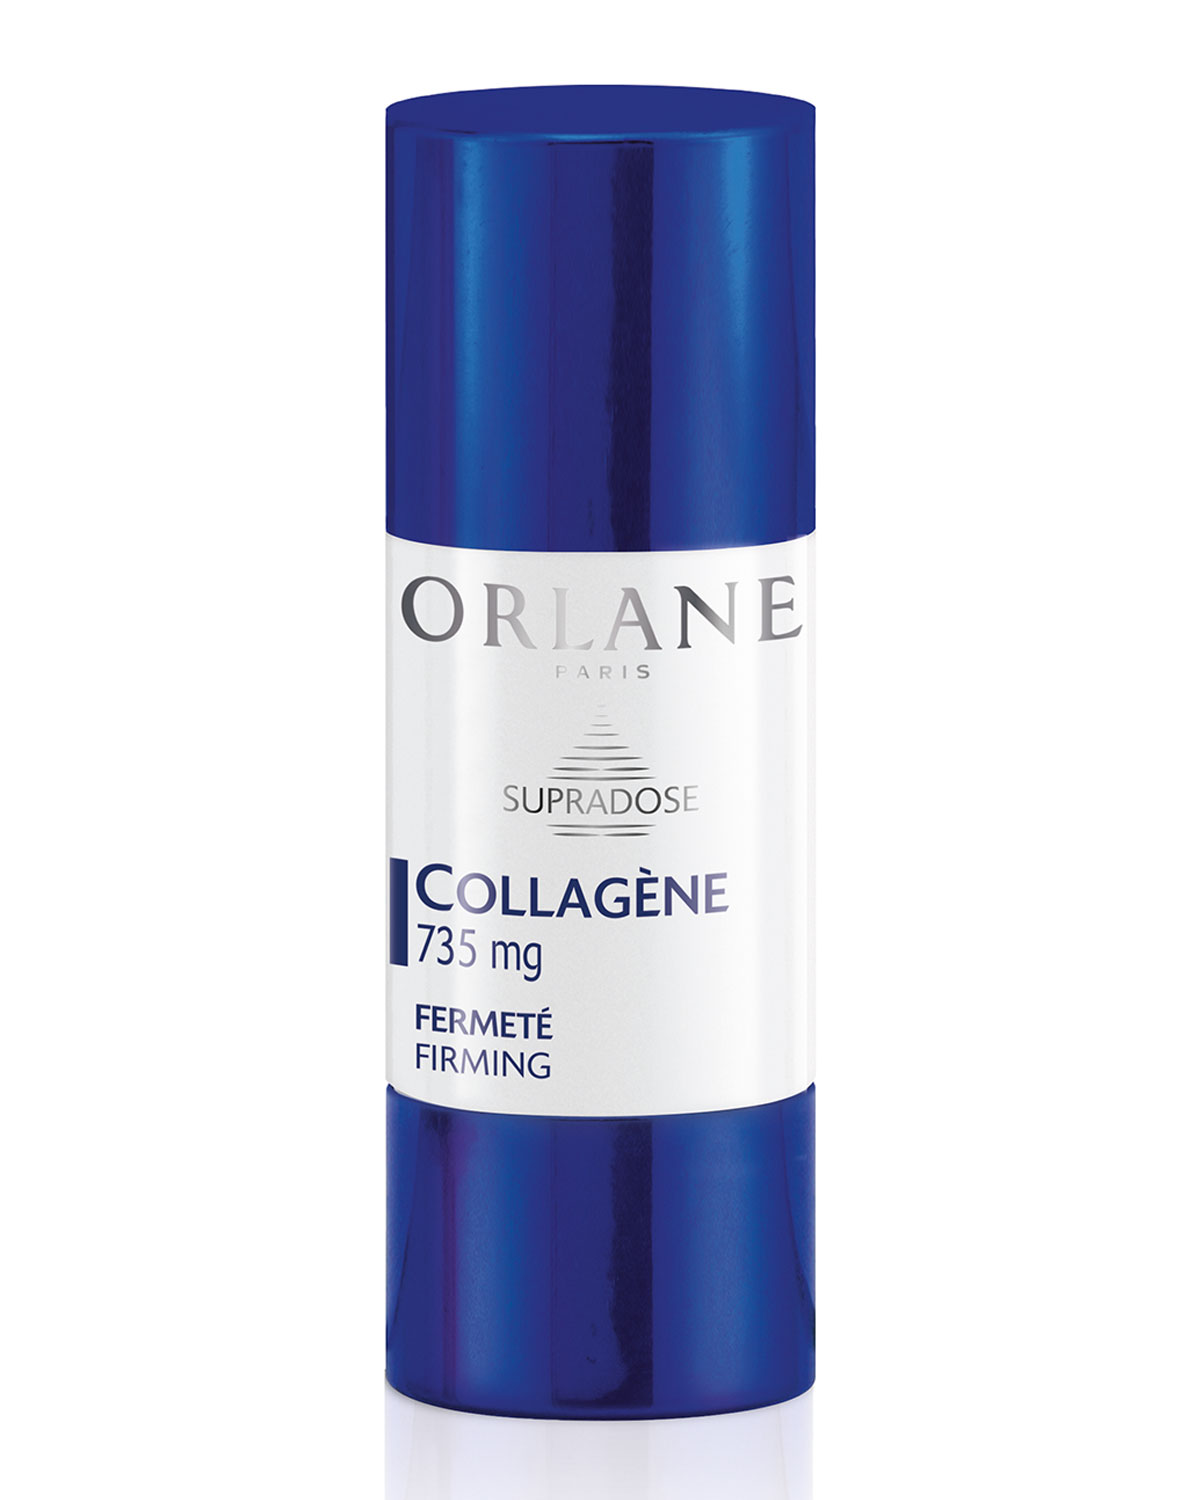 Orlane 0.5 oz. Collagene Supradose